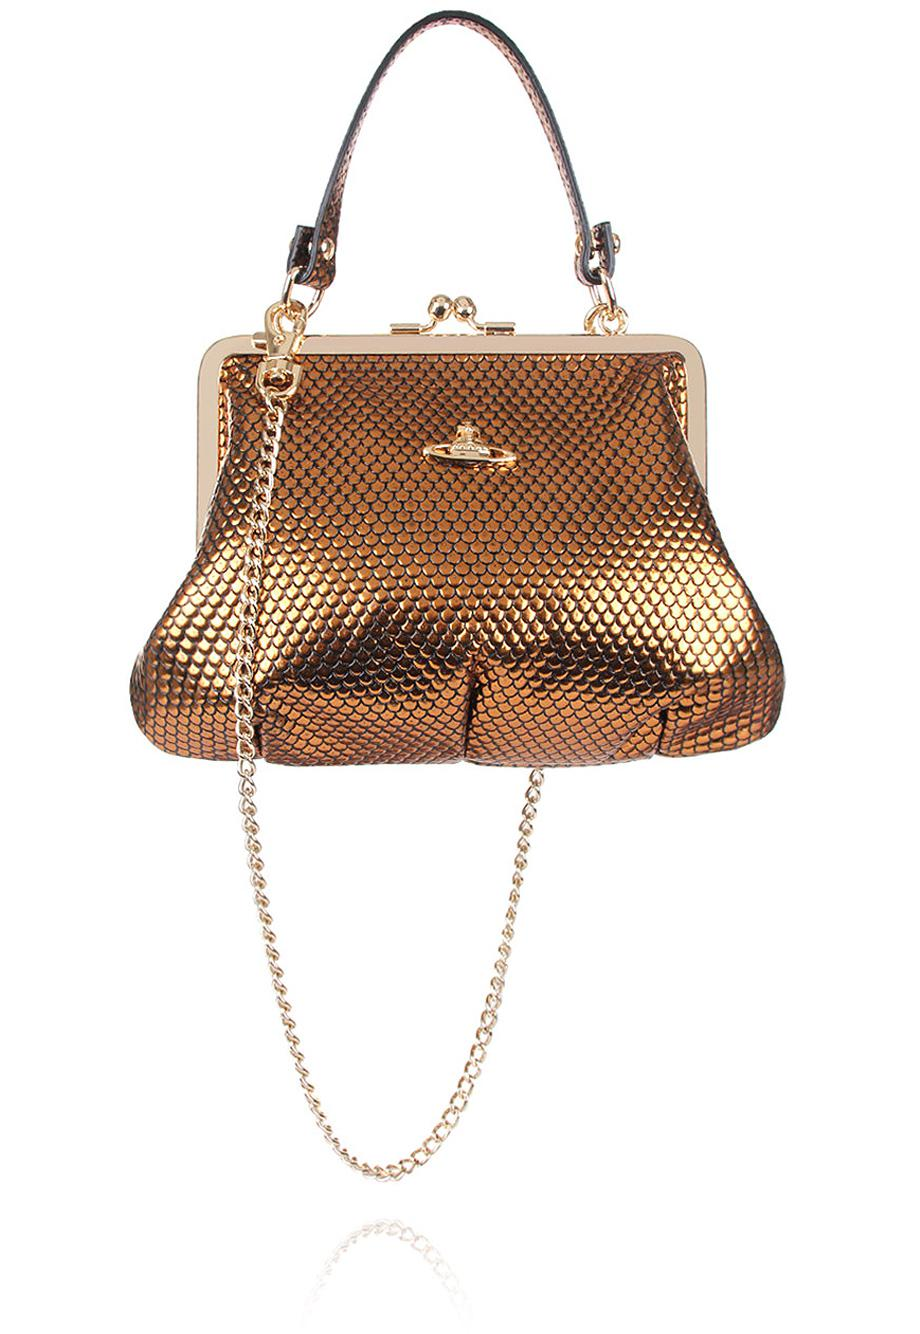 e6cd3494f31 Vivienne Westwood Florence 52020003 Small Evening Bag Gold in ...